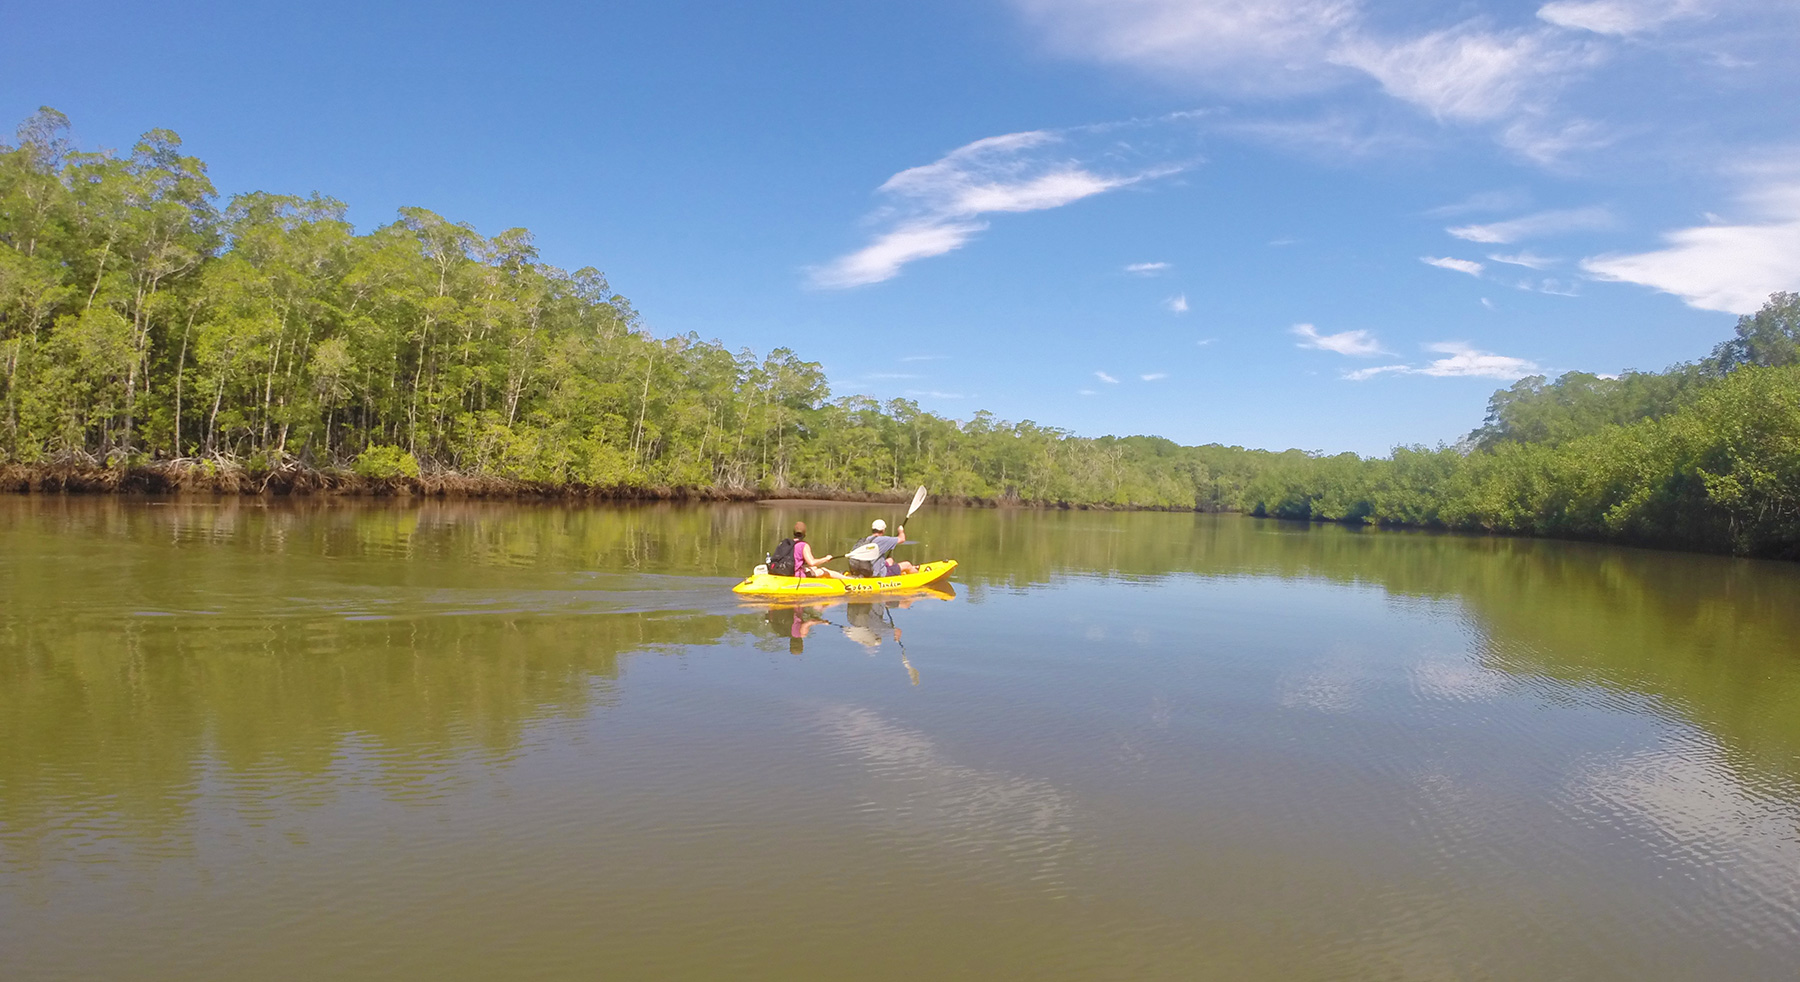 A gorgeous to day of kayaking along the Coyote mangroves.